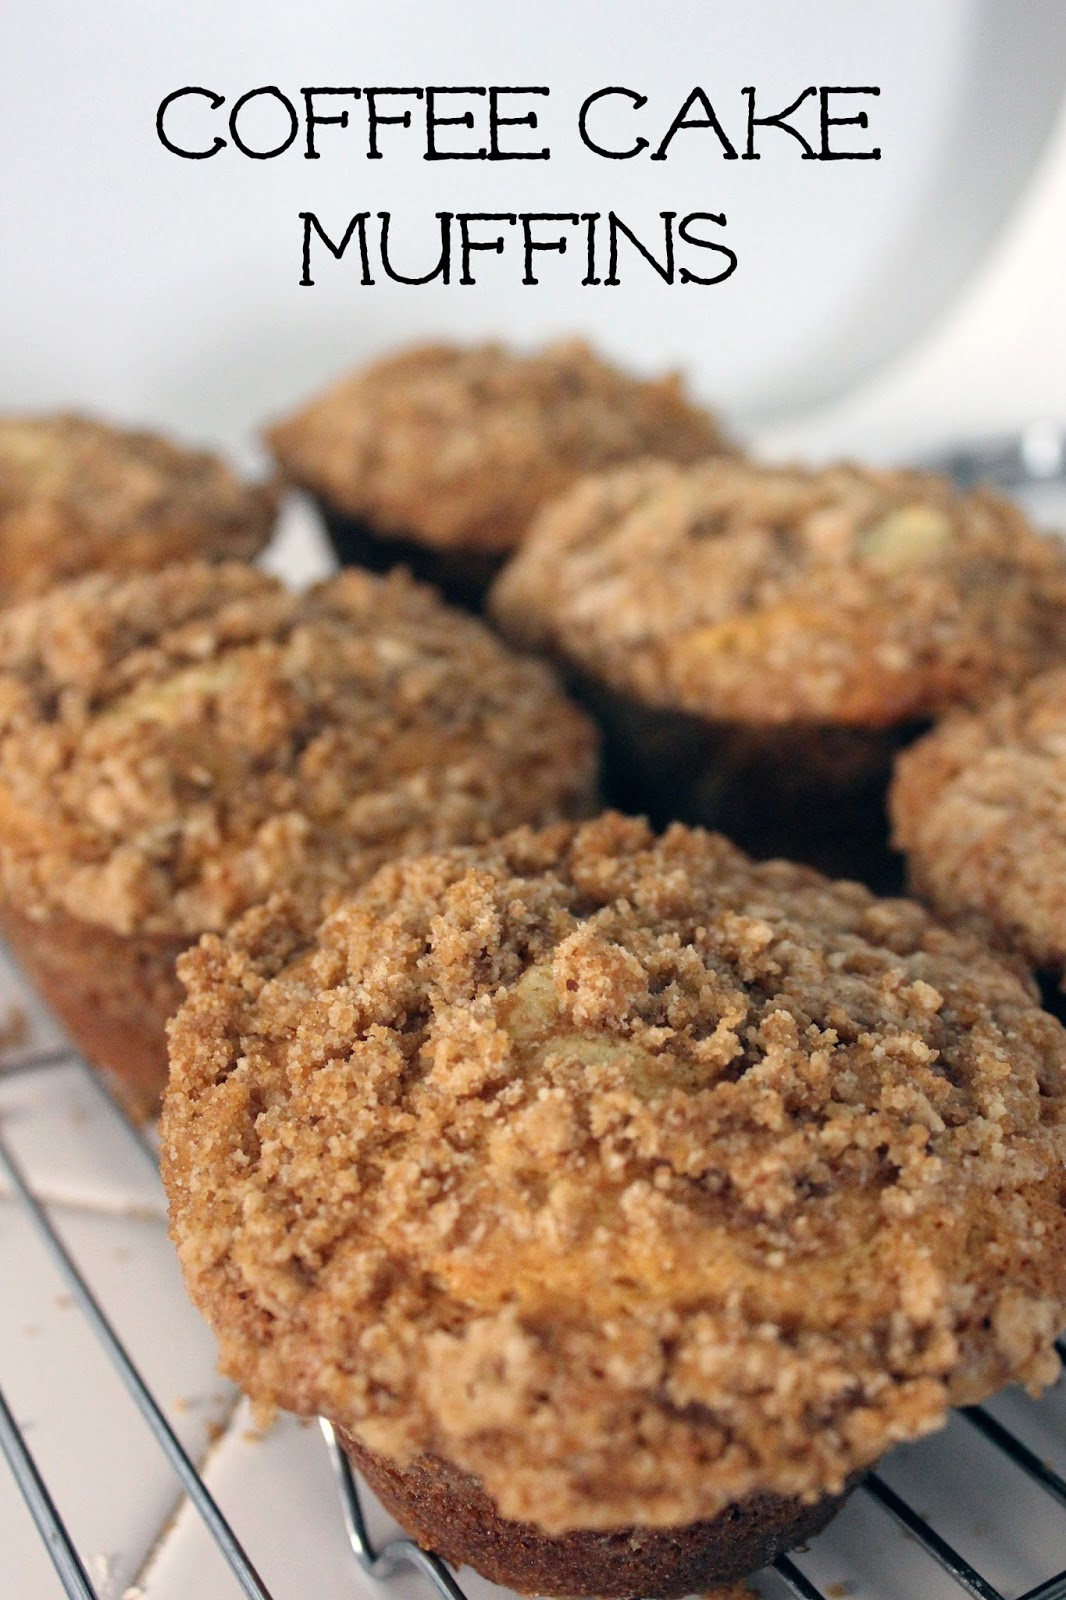 Coffee Cake Muffins by freshfromthe.com